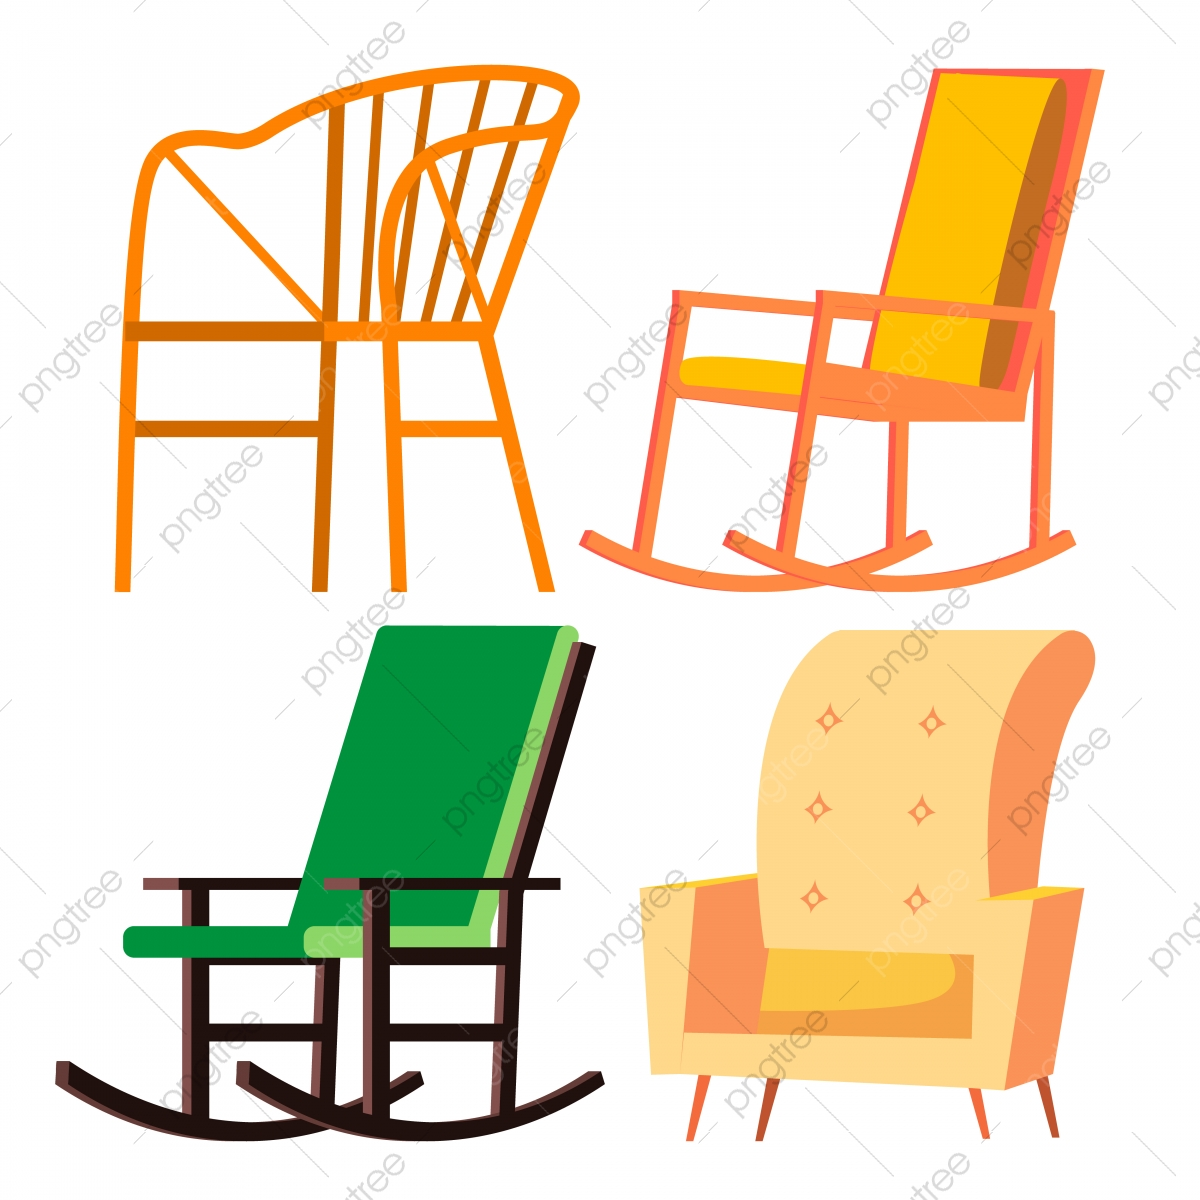 Rocking Chair Border Png - Rocking Chair Vector Retro Furniture Comfortable Home Wooden Chair ...